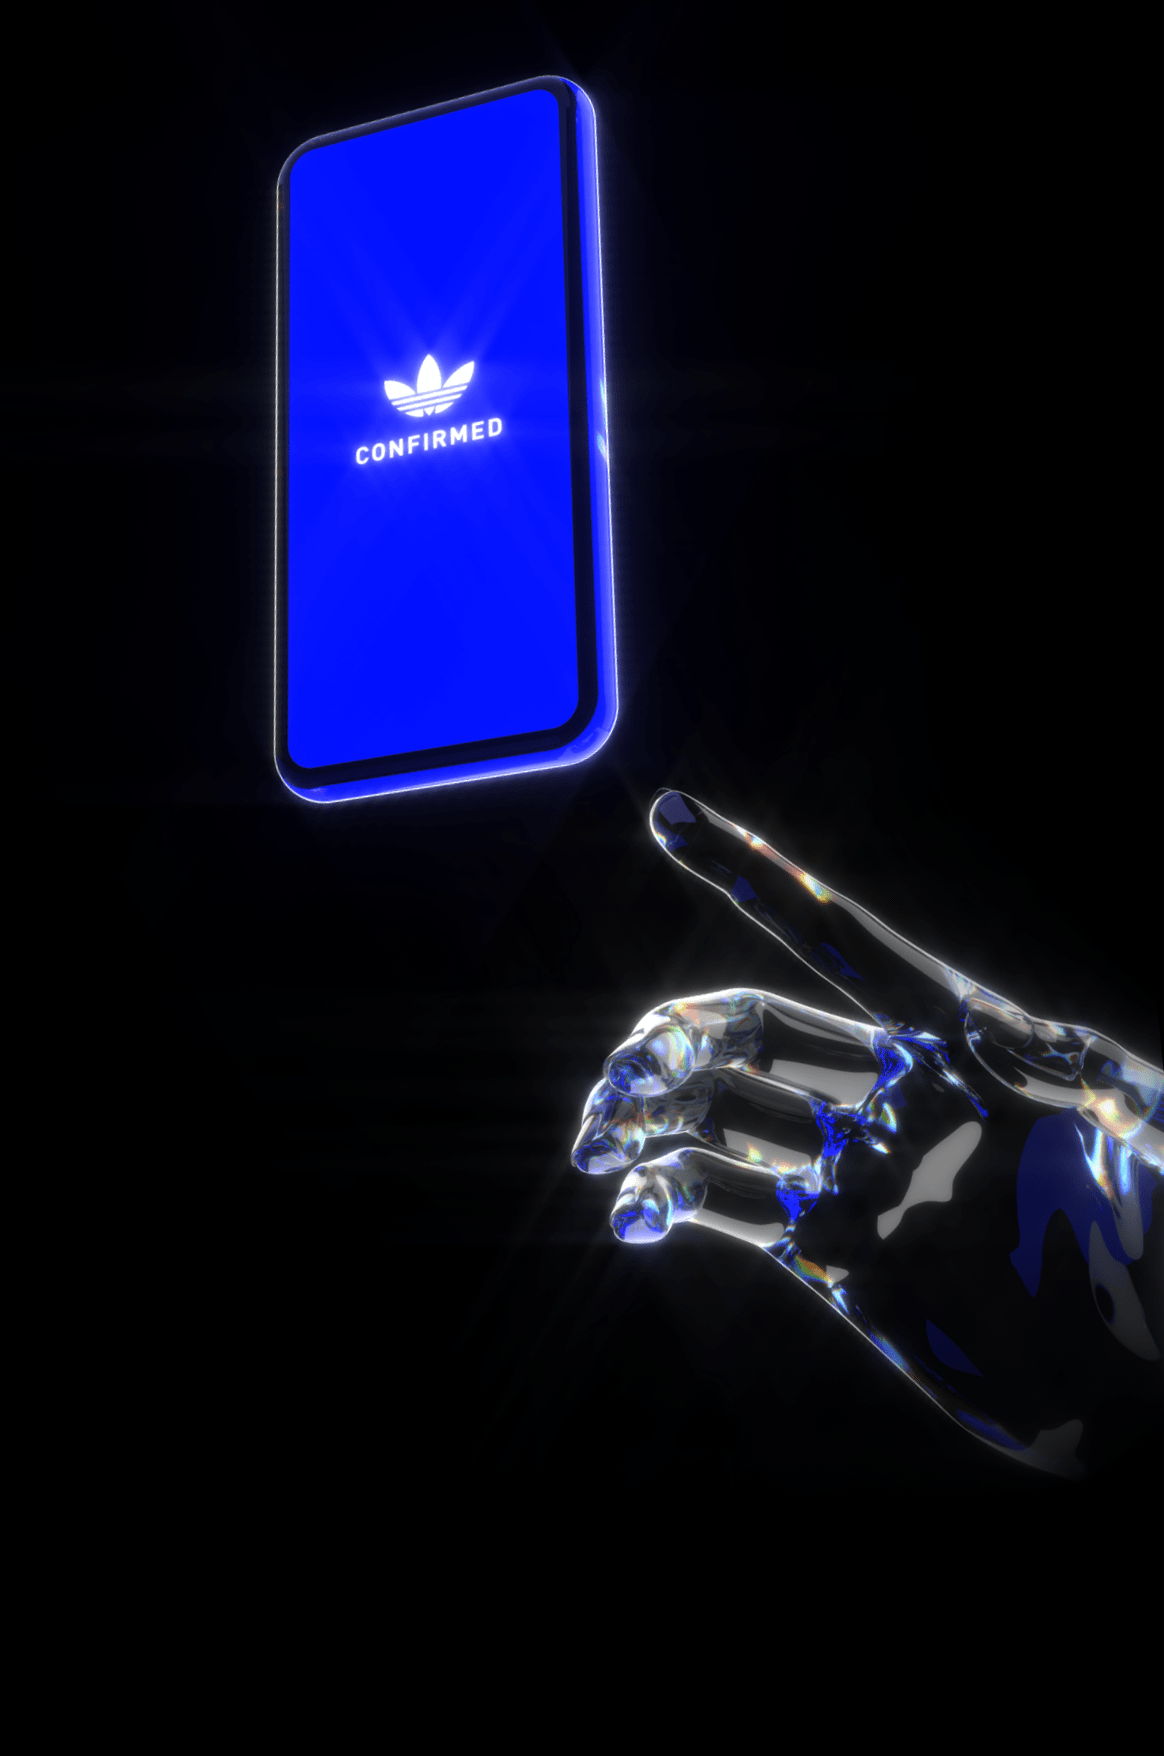 3D hand reaching out to phone showing the confirmed app